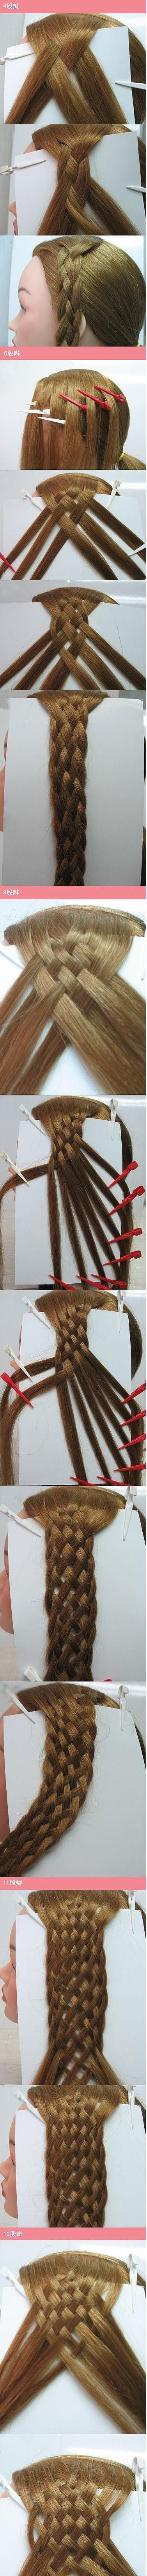 Great visual of how some of the multi-strand braids of the early middle 1800s work. Awesome!